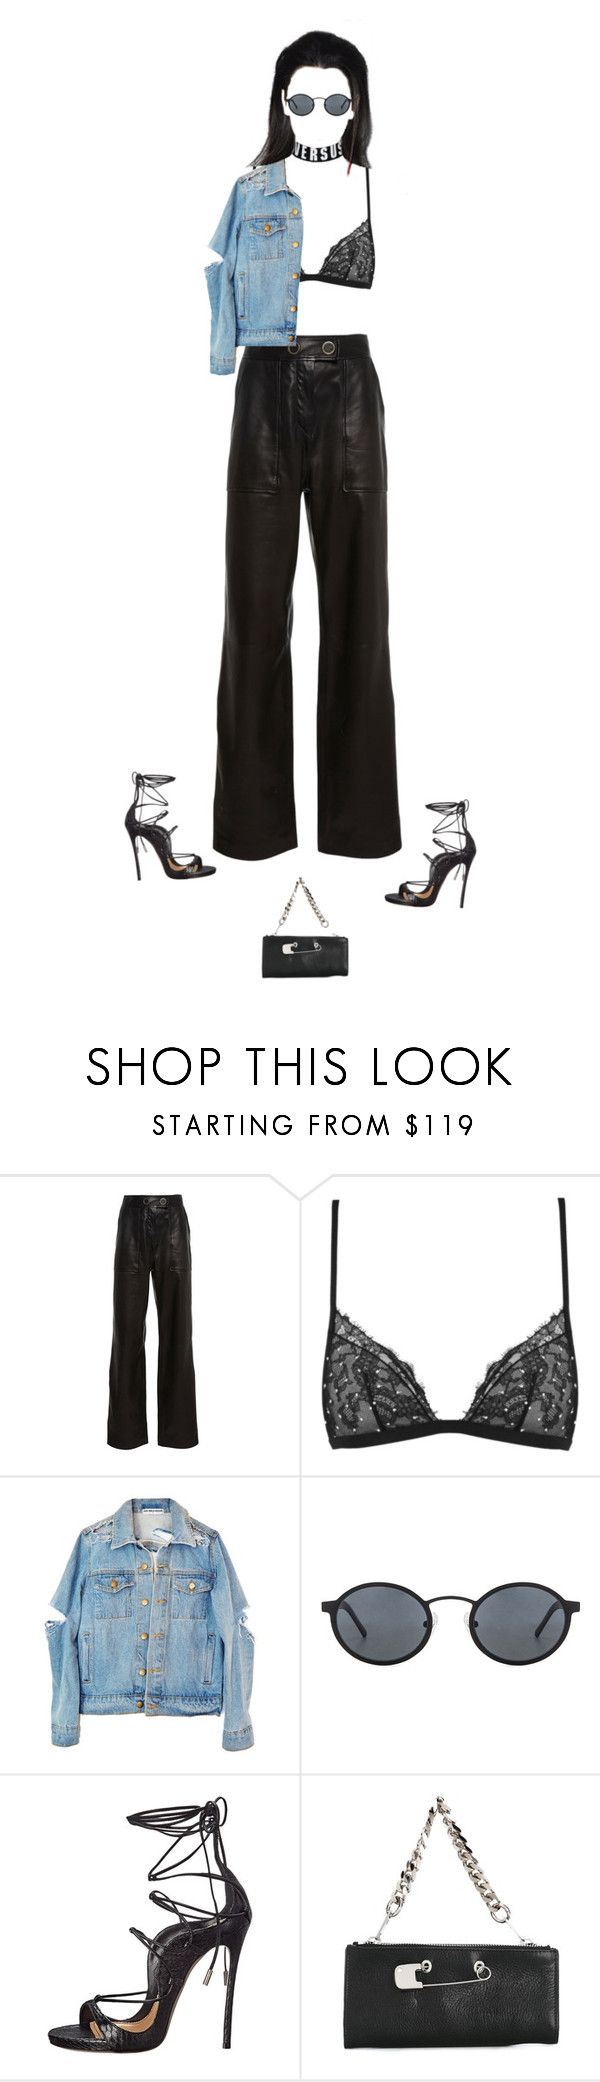 """u wanna put your name on it"" by andy993011 on Polyvore featuring Yves Salomon, La Perla, Blyszak, Dsquared2 and Sonia by Sonia Rykiel"